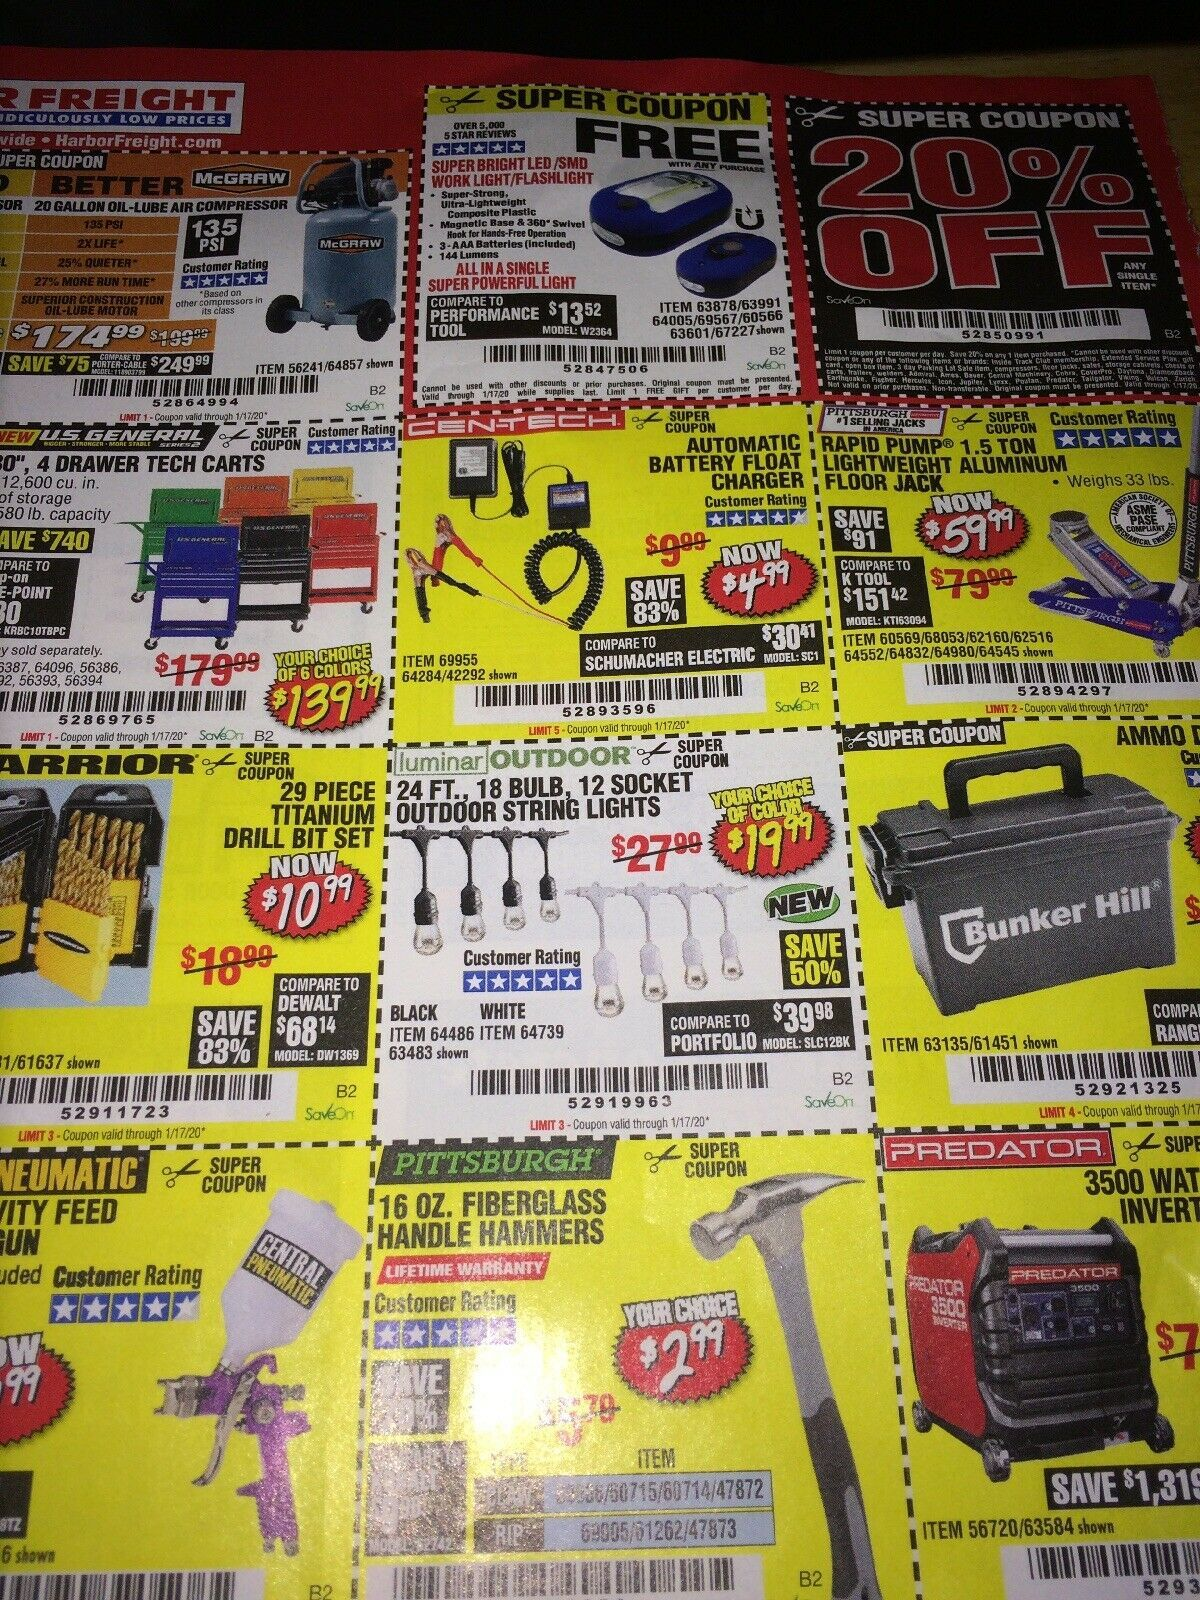 Harbor Freight Discount SUPER Coupons 20% Expires 1/2020 ...